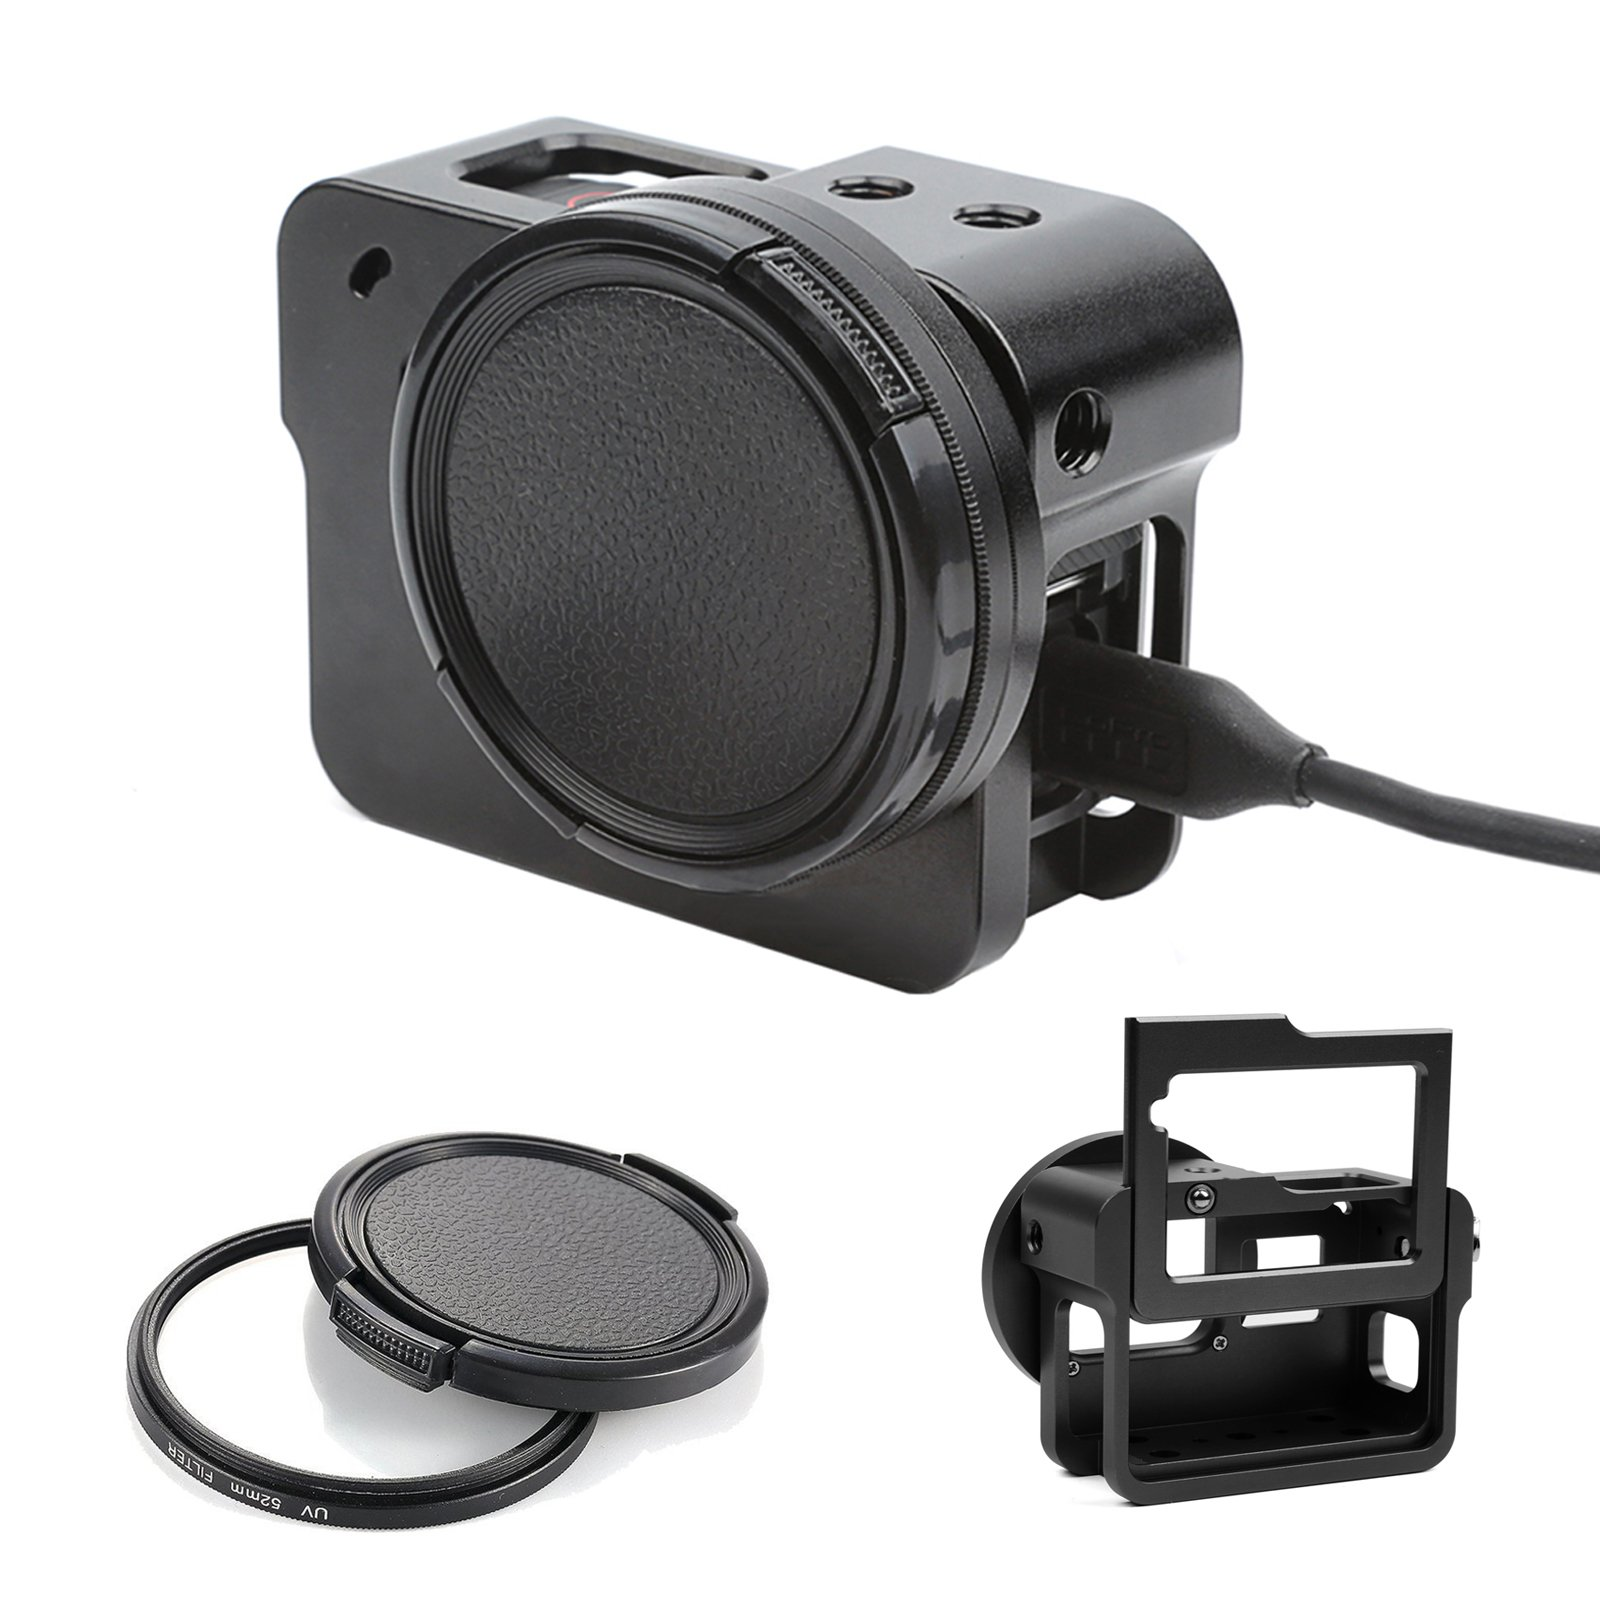 D&F Aluminum Alloy Protective Housing Case with Protective UV Lens & Backdoor for GoPro Hero 6